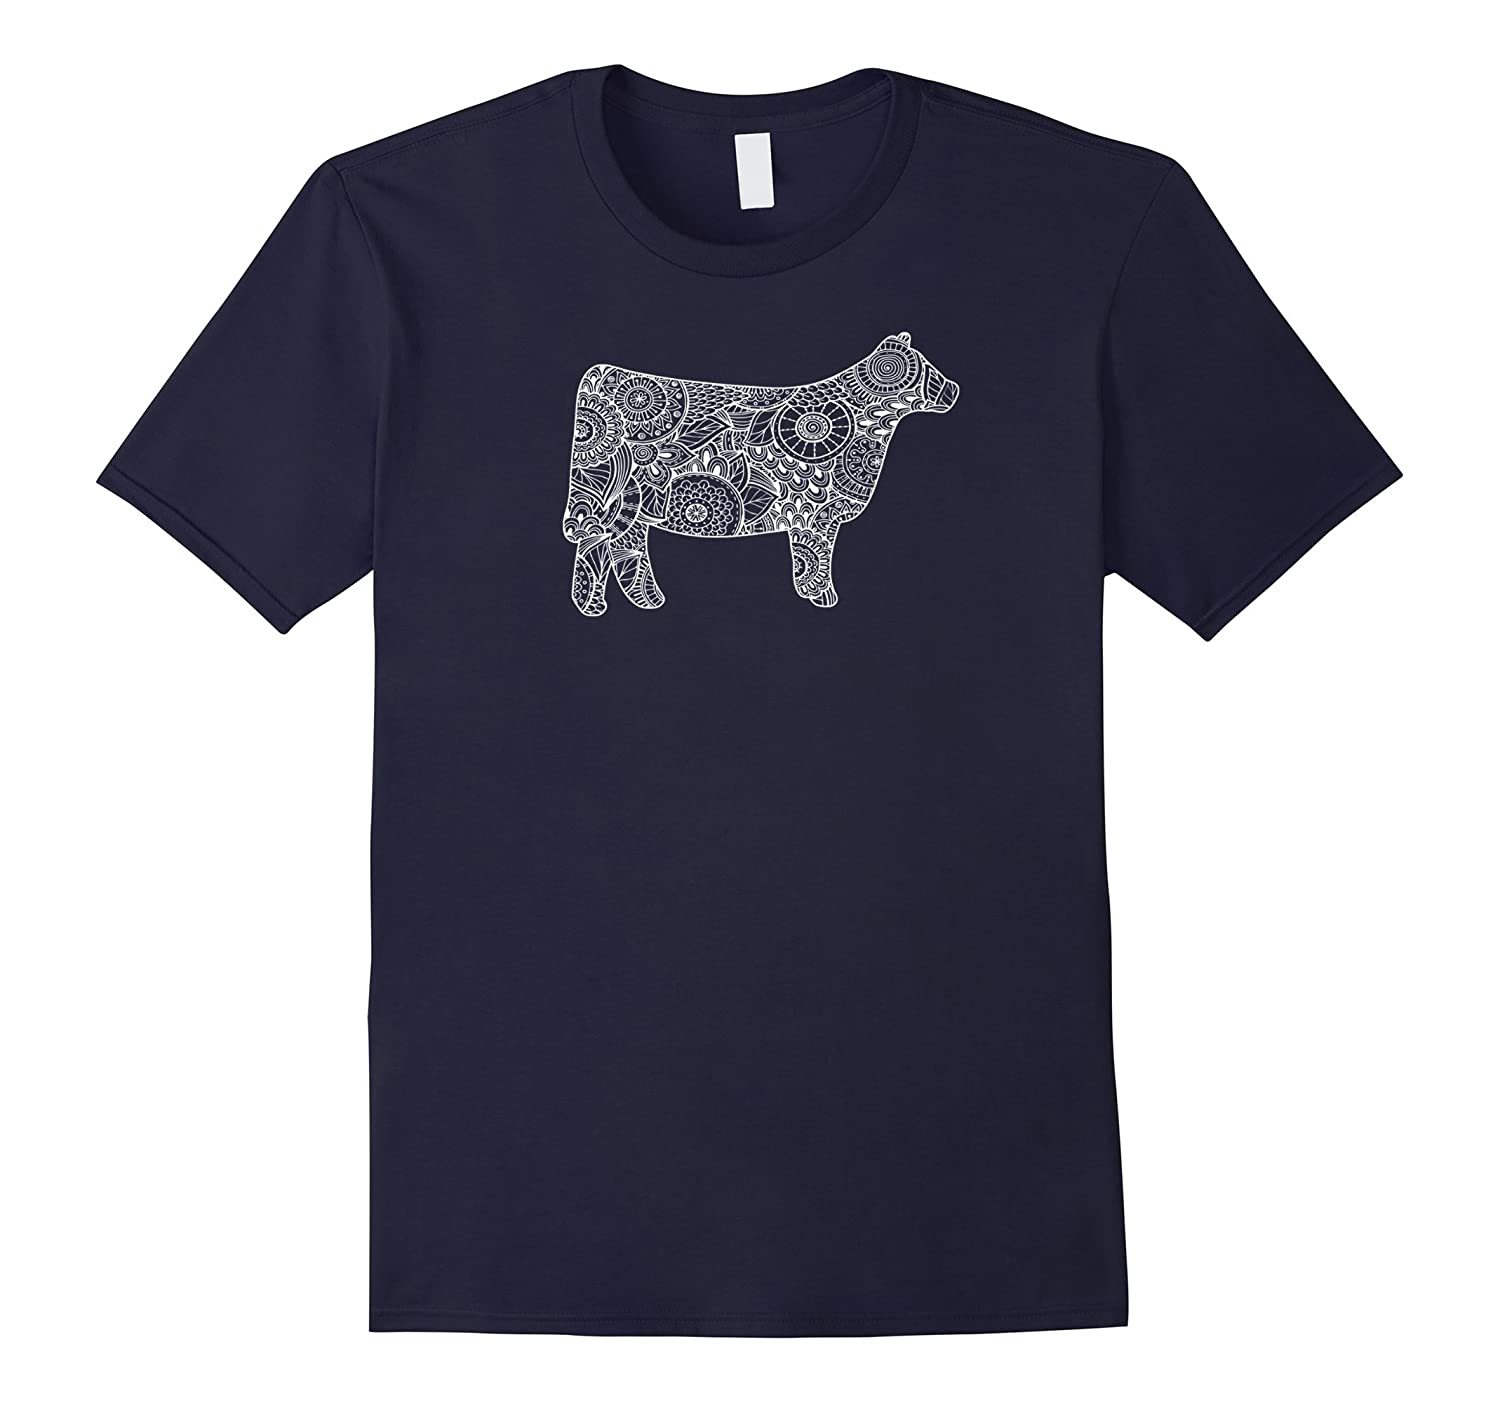 Cow Mandala Shirt - Trendy for Cattle Beef Livestock Show-FL